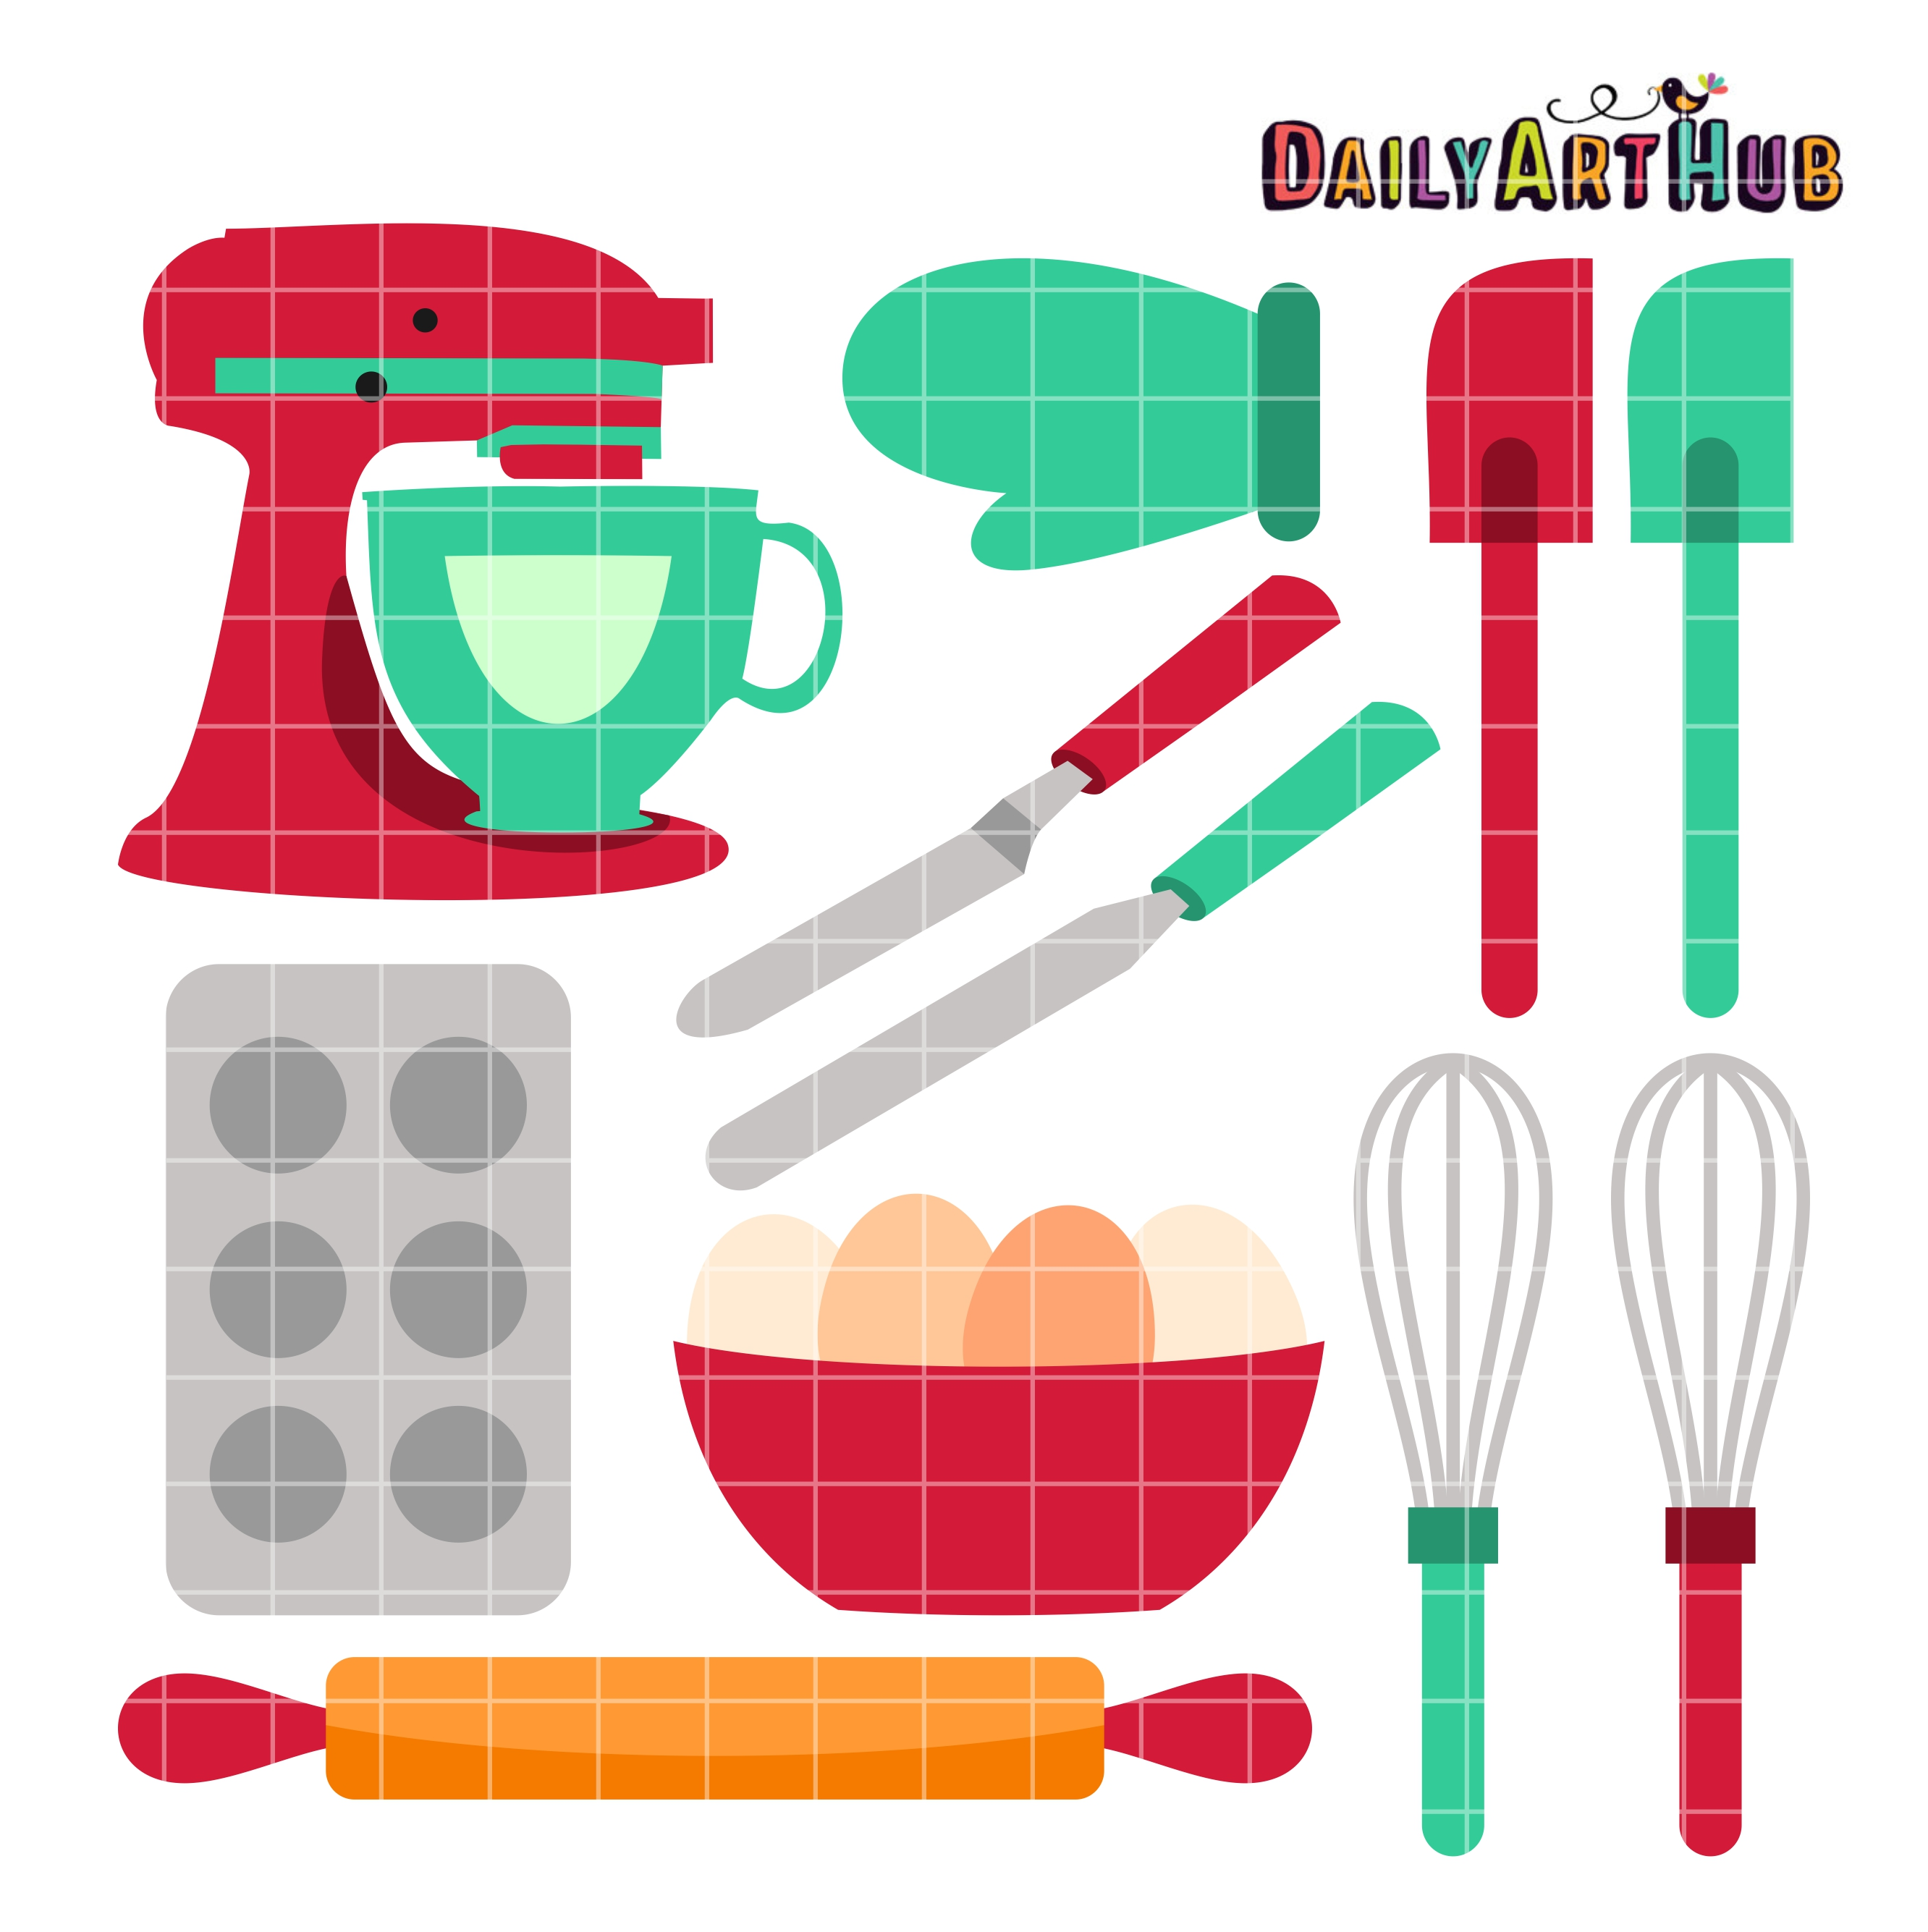 Baking tools clipart 6 » Clipart Station.